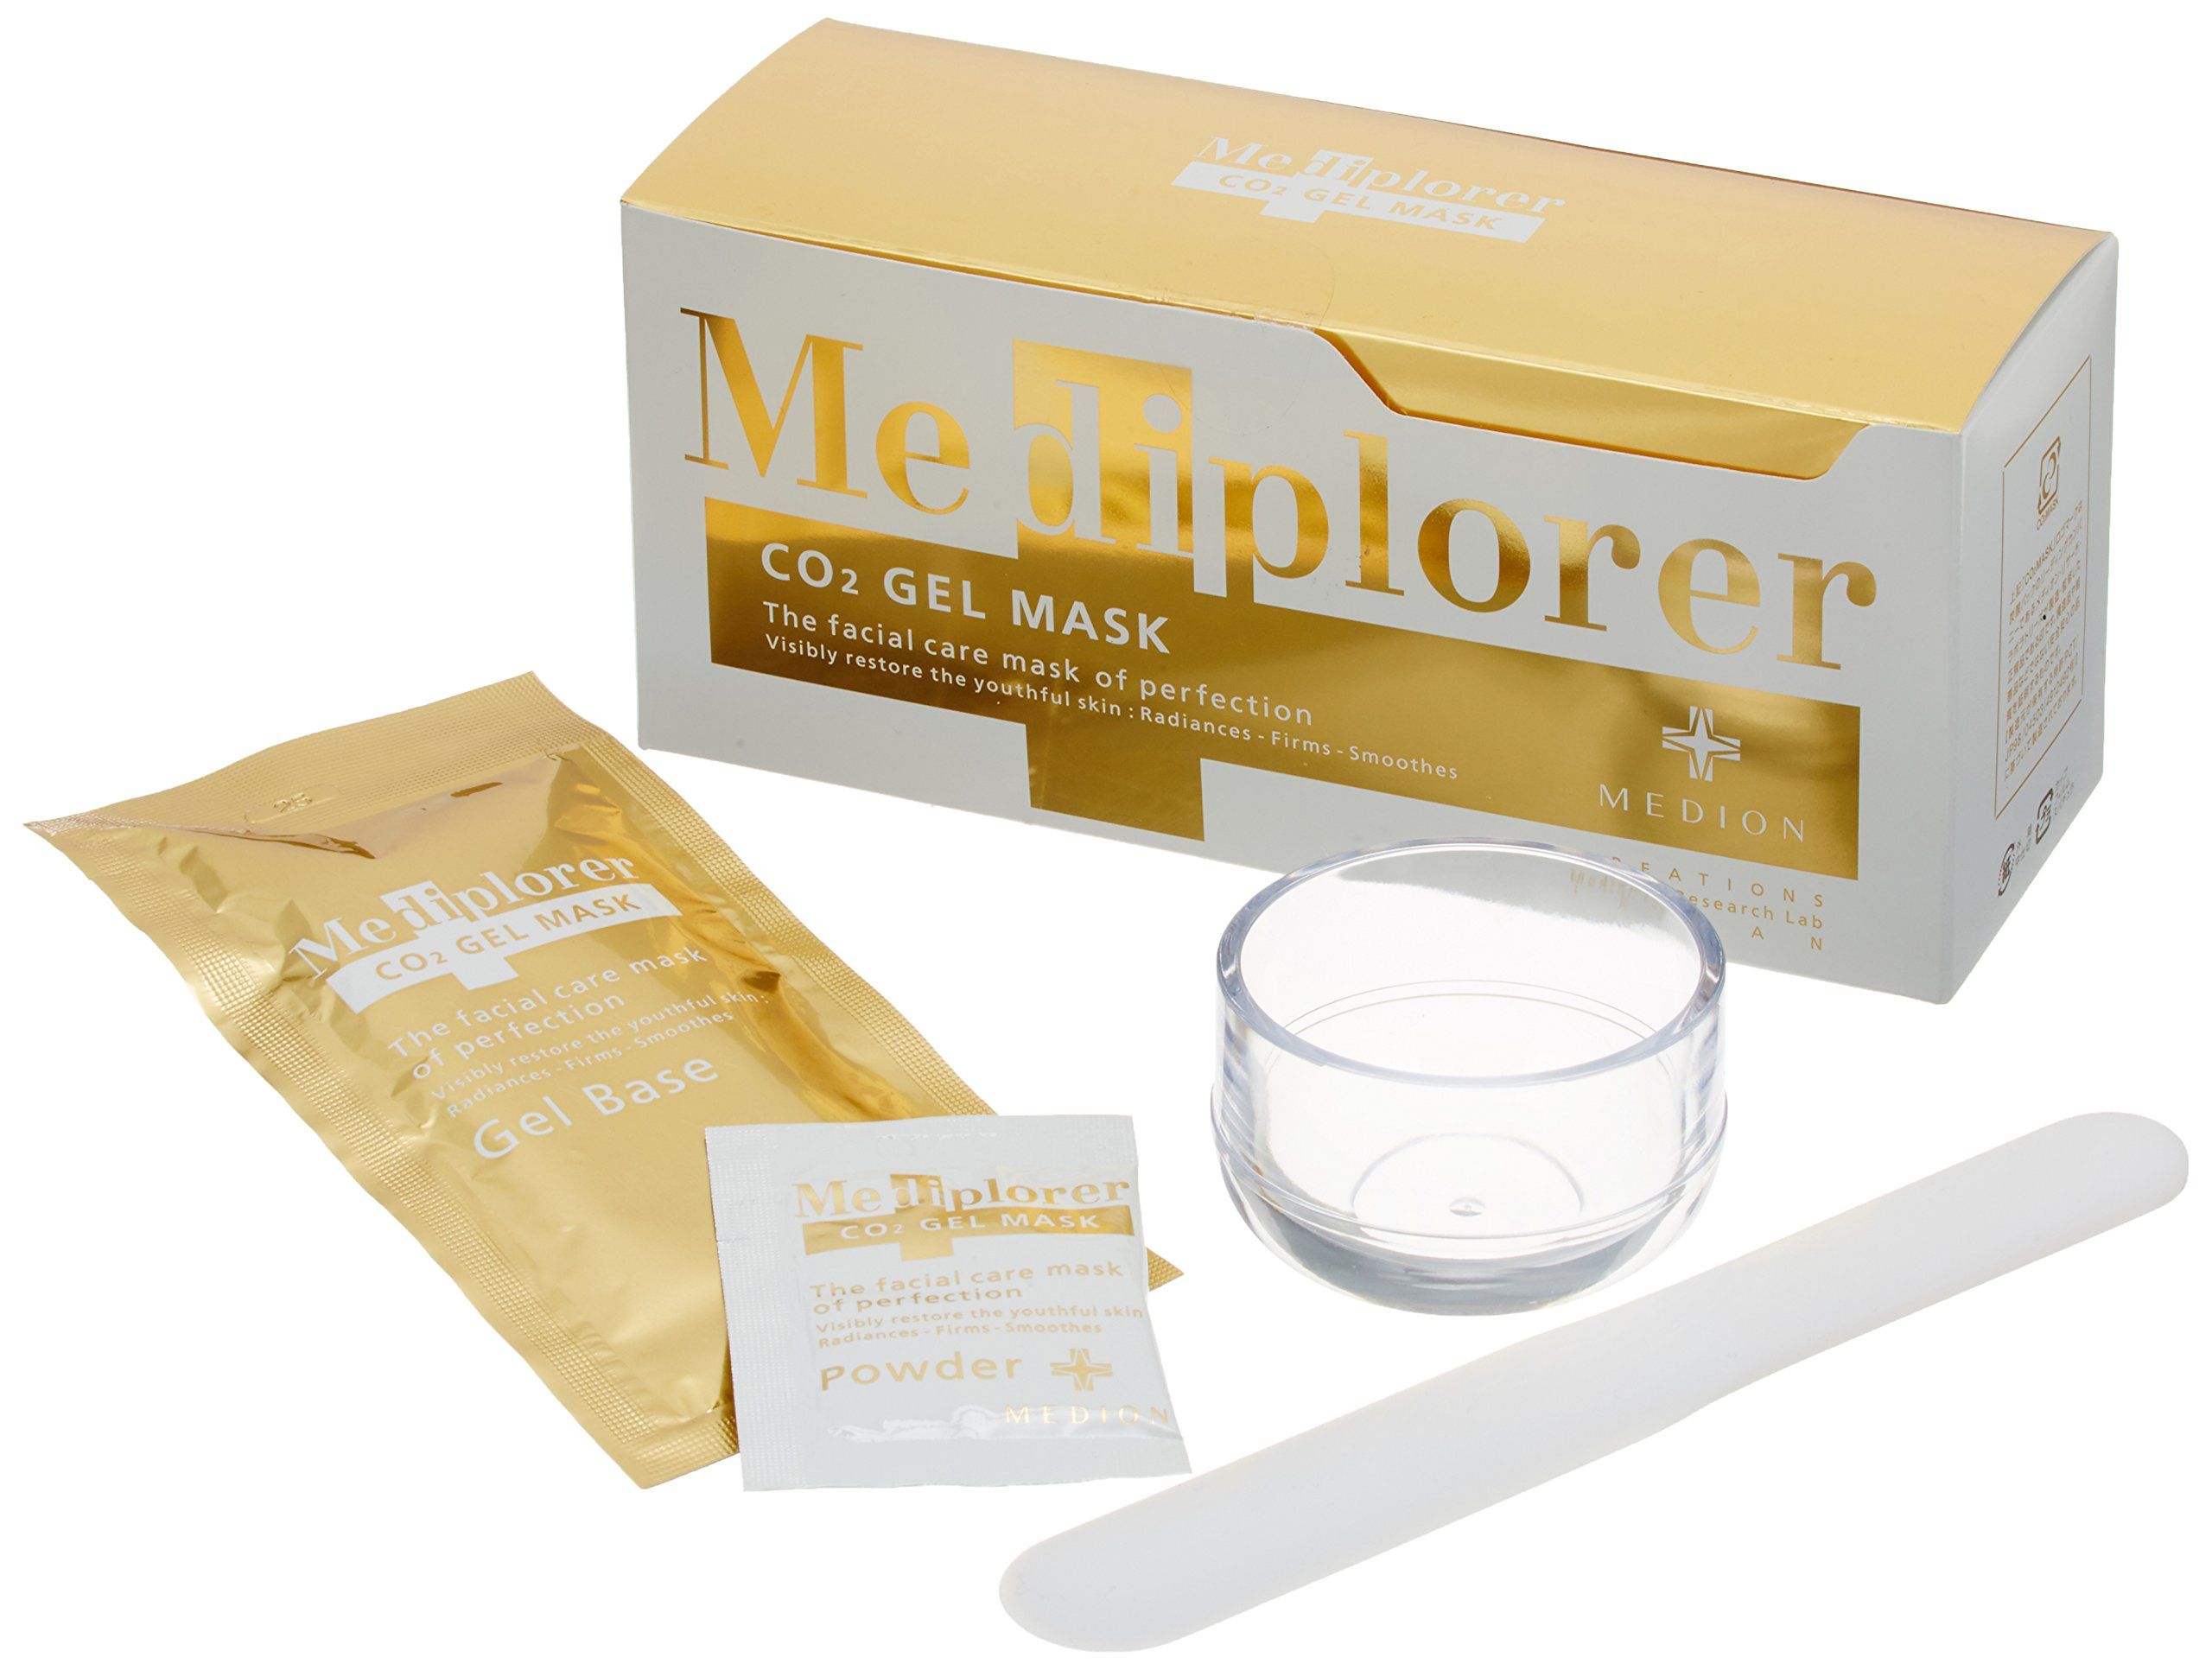 Mediplorer CO2 Gel Mask 6 Times Black Peel Off Face Mask (2.4oz) - Natural Deep Cleanser Blackhead Remover